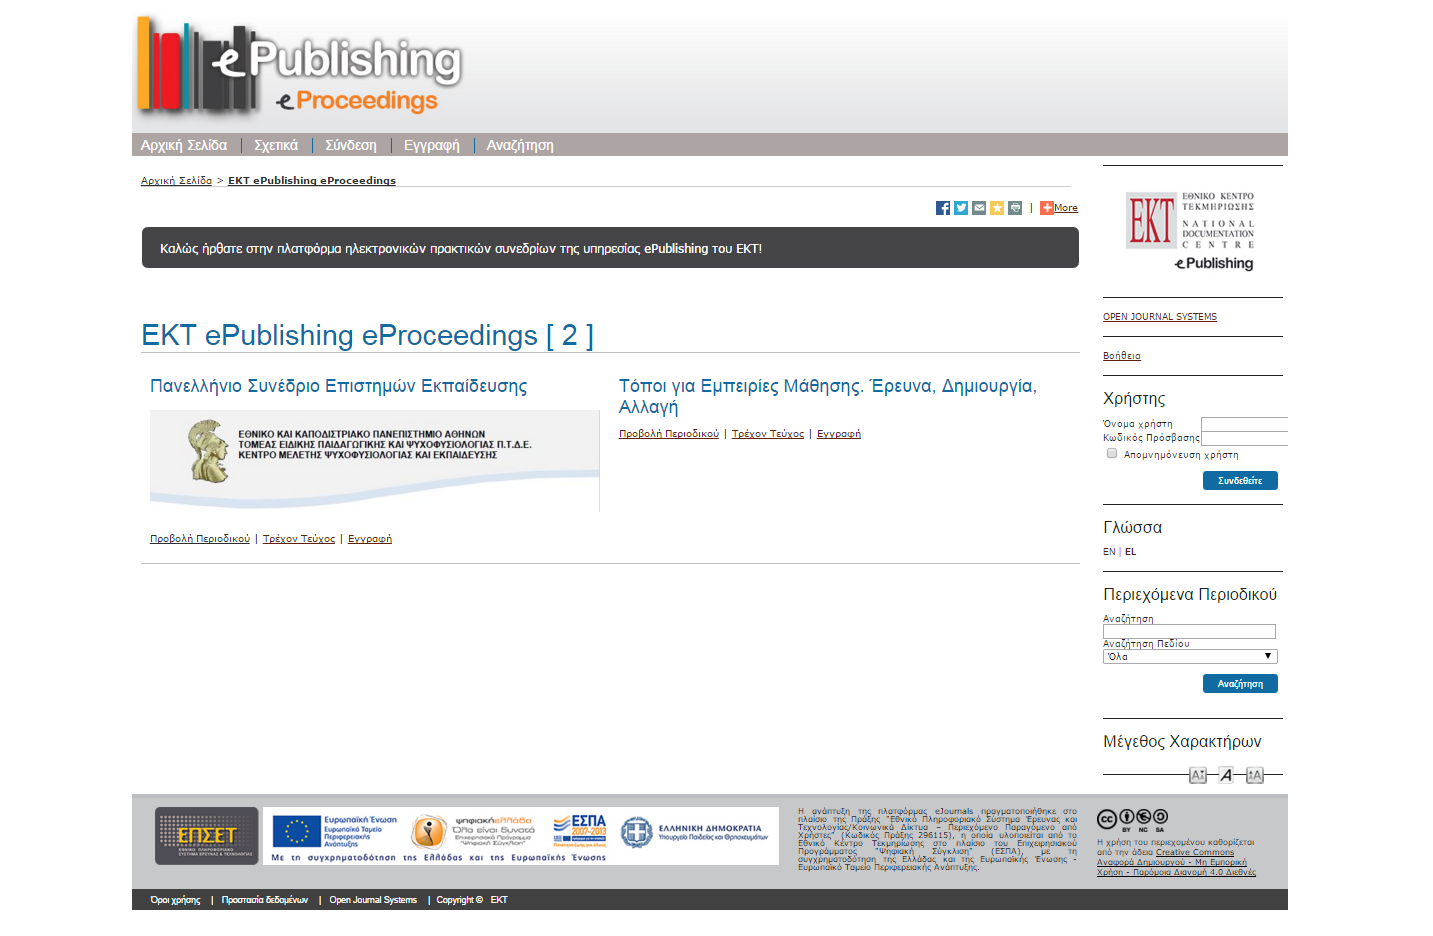 http://eproceedings.epublishing.ekt.